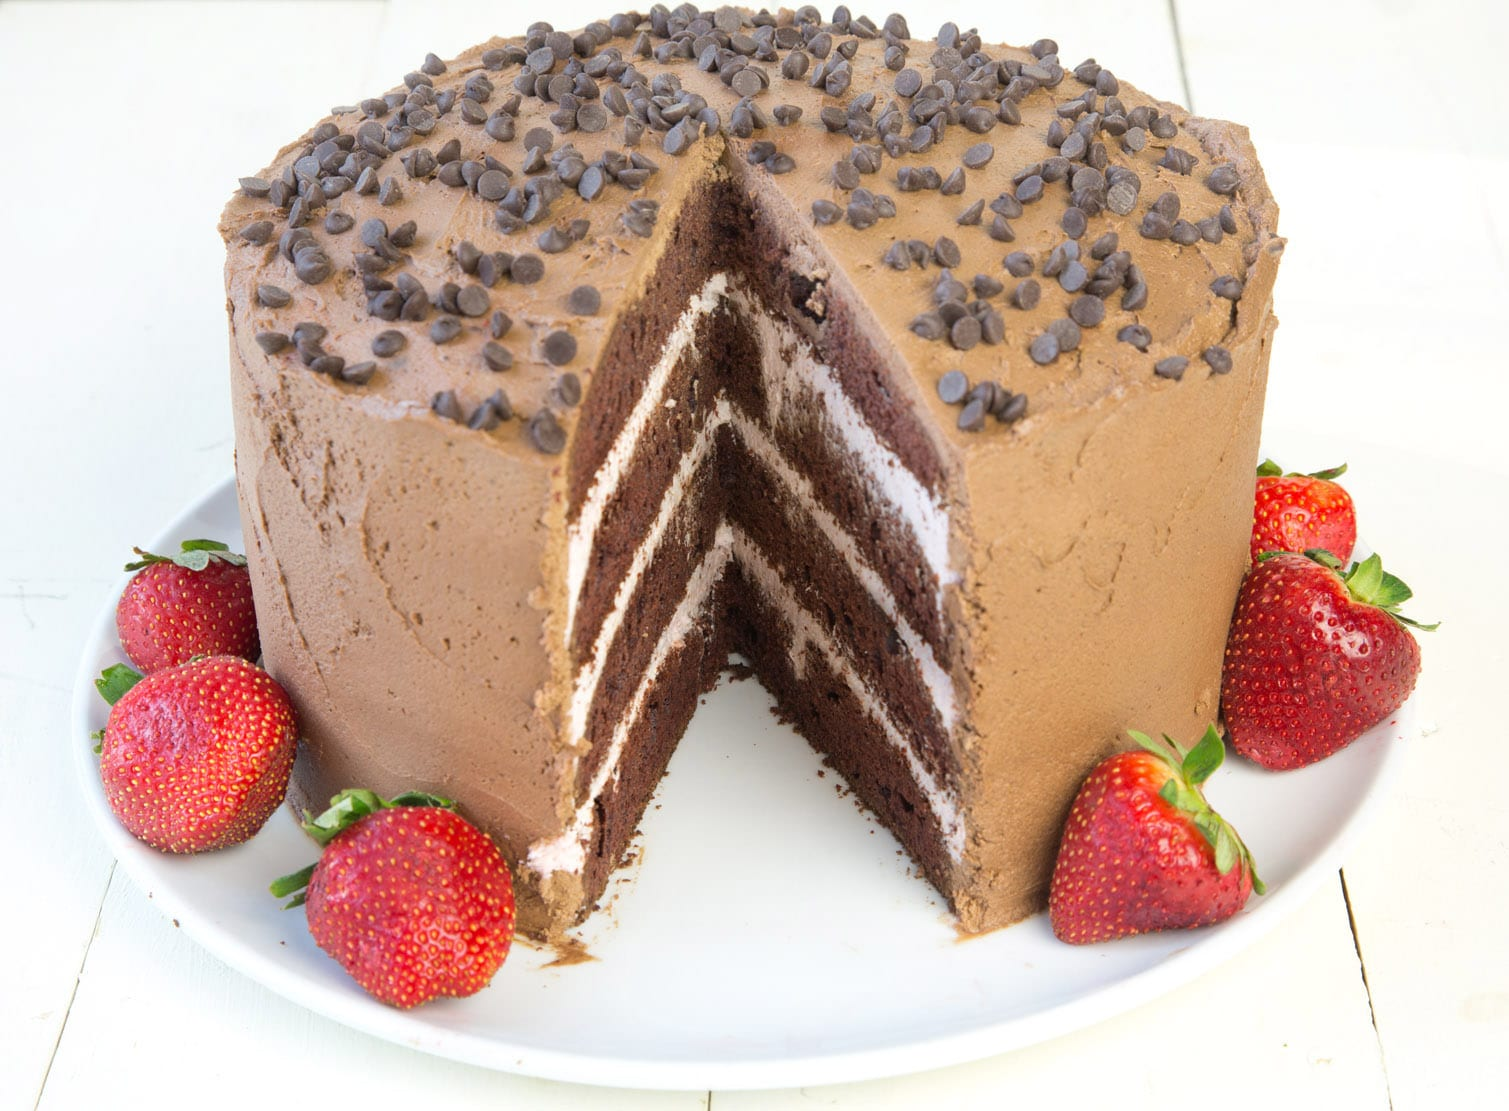 Cake With Chocolate Mousse : Chocolate Cake With Strawberry Mousse Filling Dark Brown ...